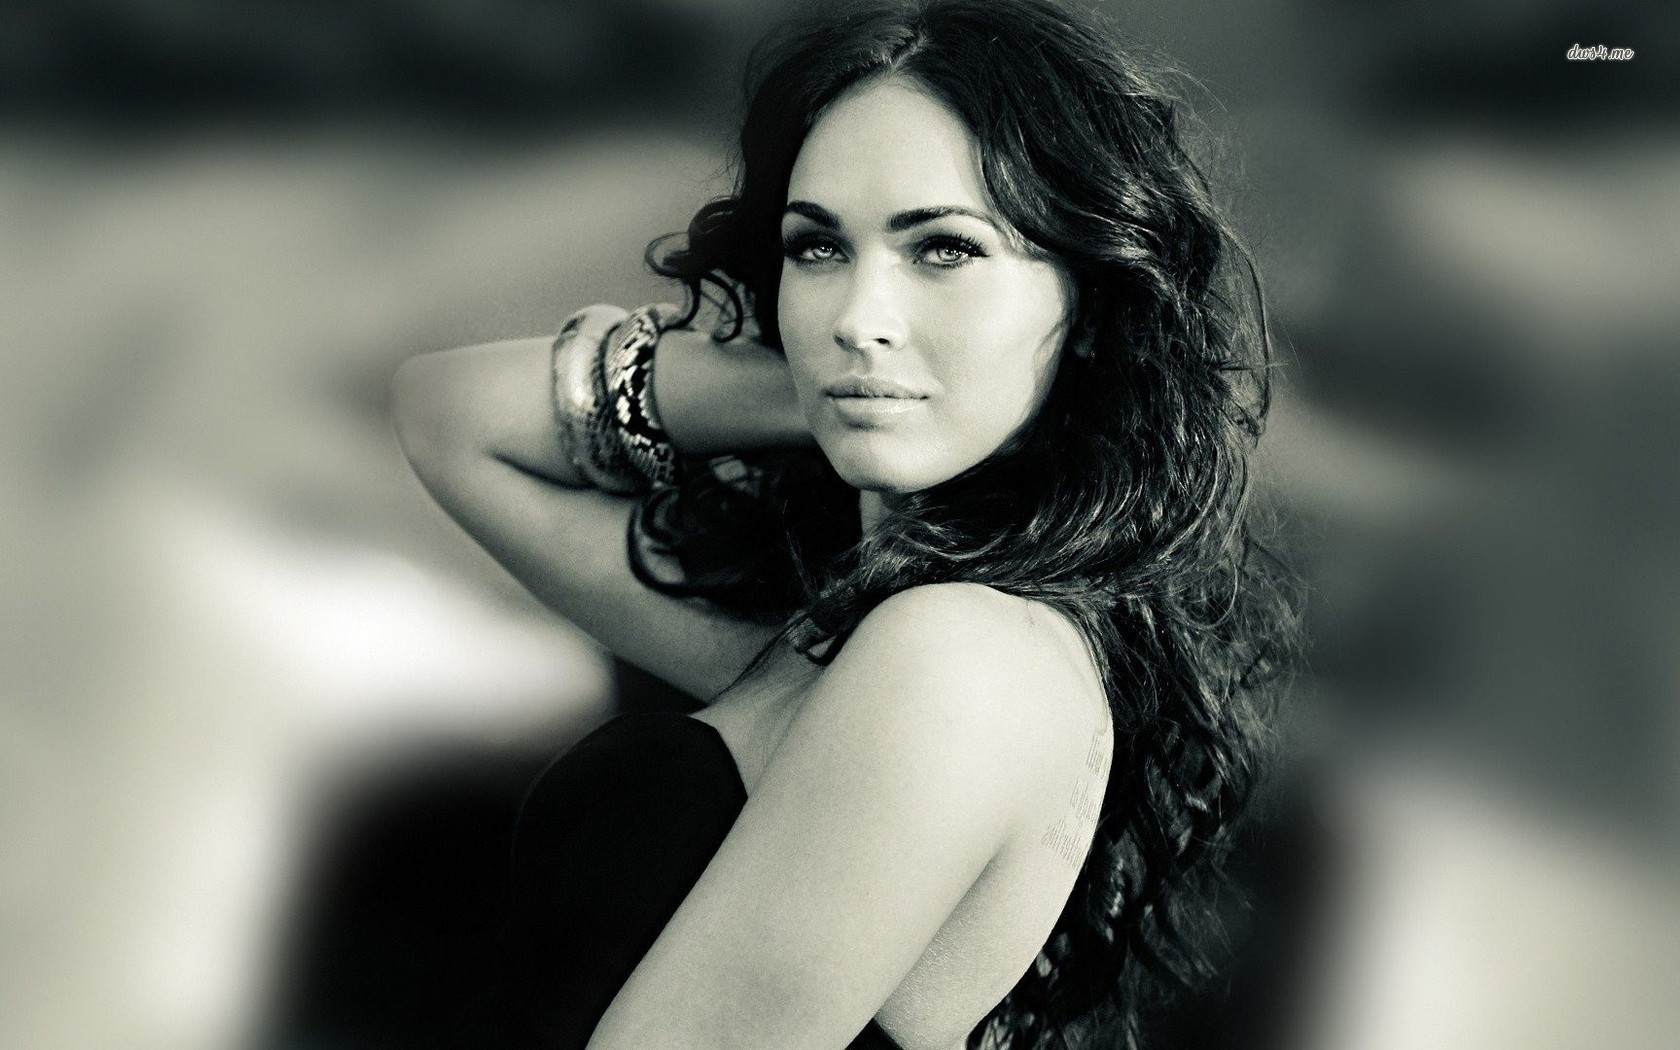 Megan Fox wallpaper 1366x768 Megan Fox wallpaper 1680x1050 Megan Fox 1680x1050